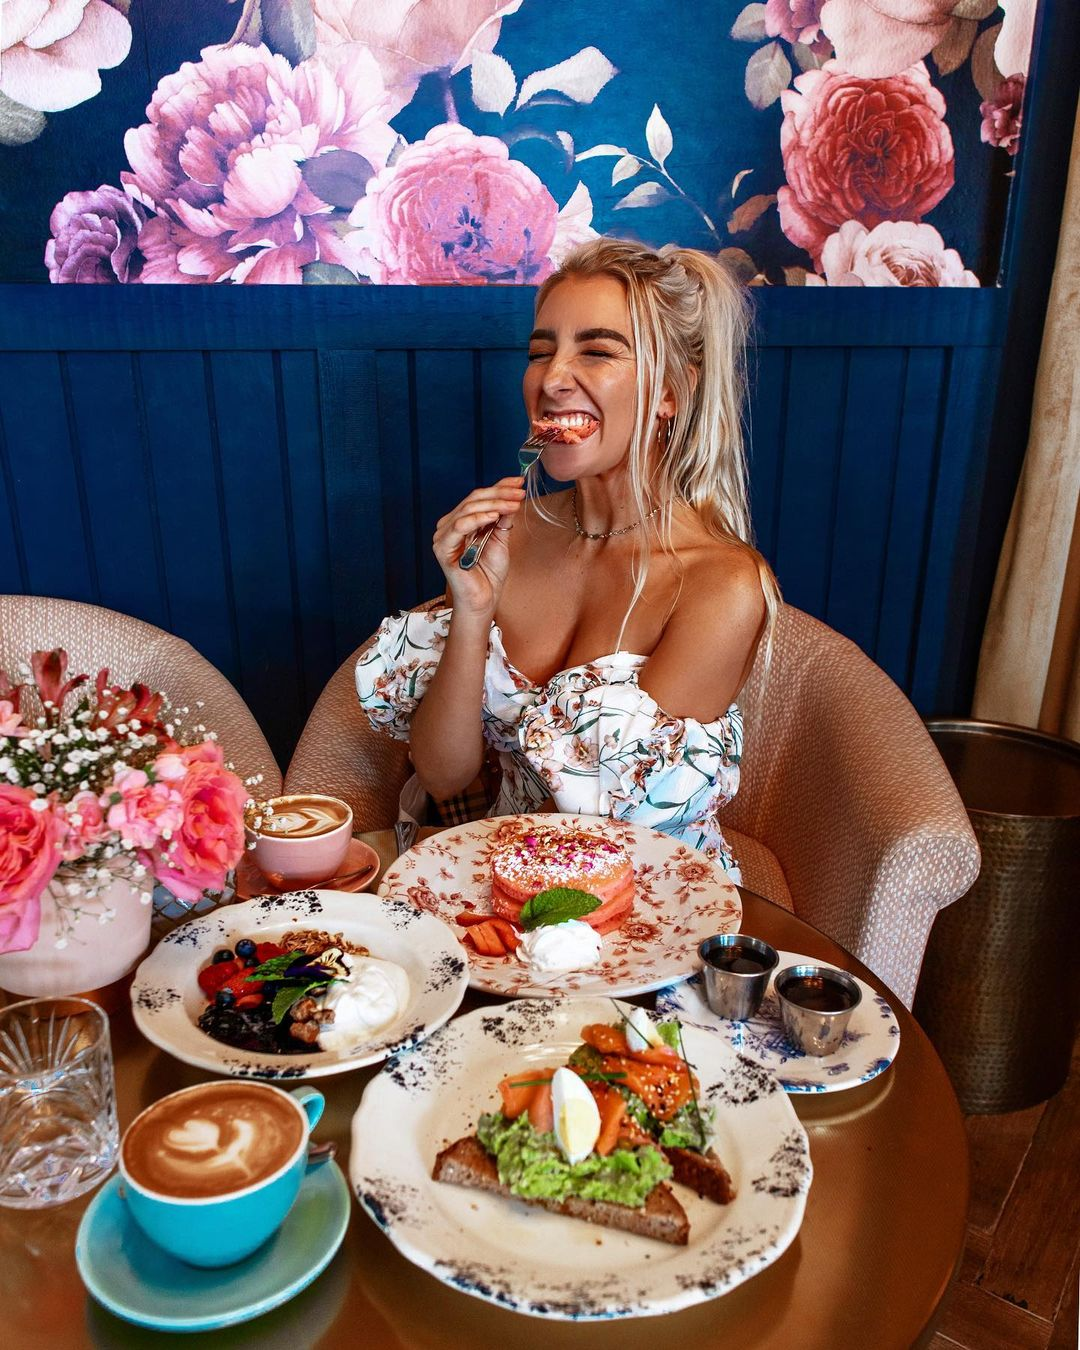 a woman in a floral outfit at a table full of food in a restaurant